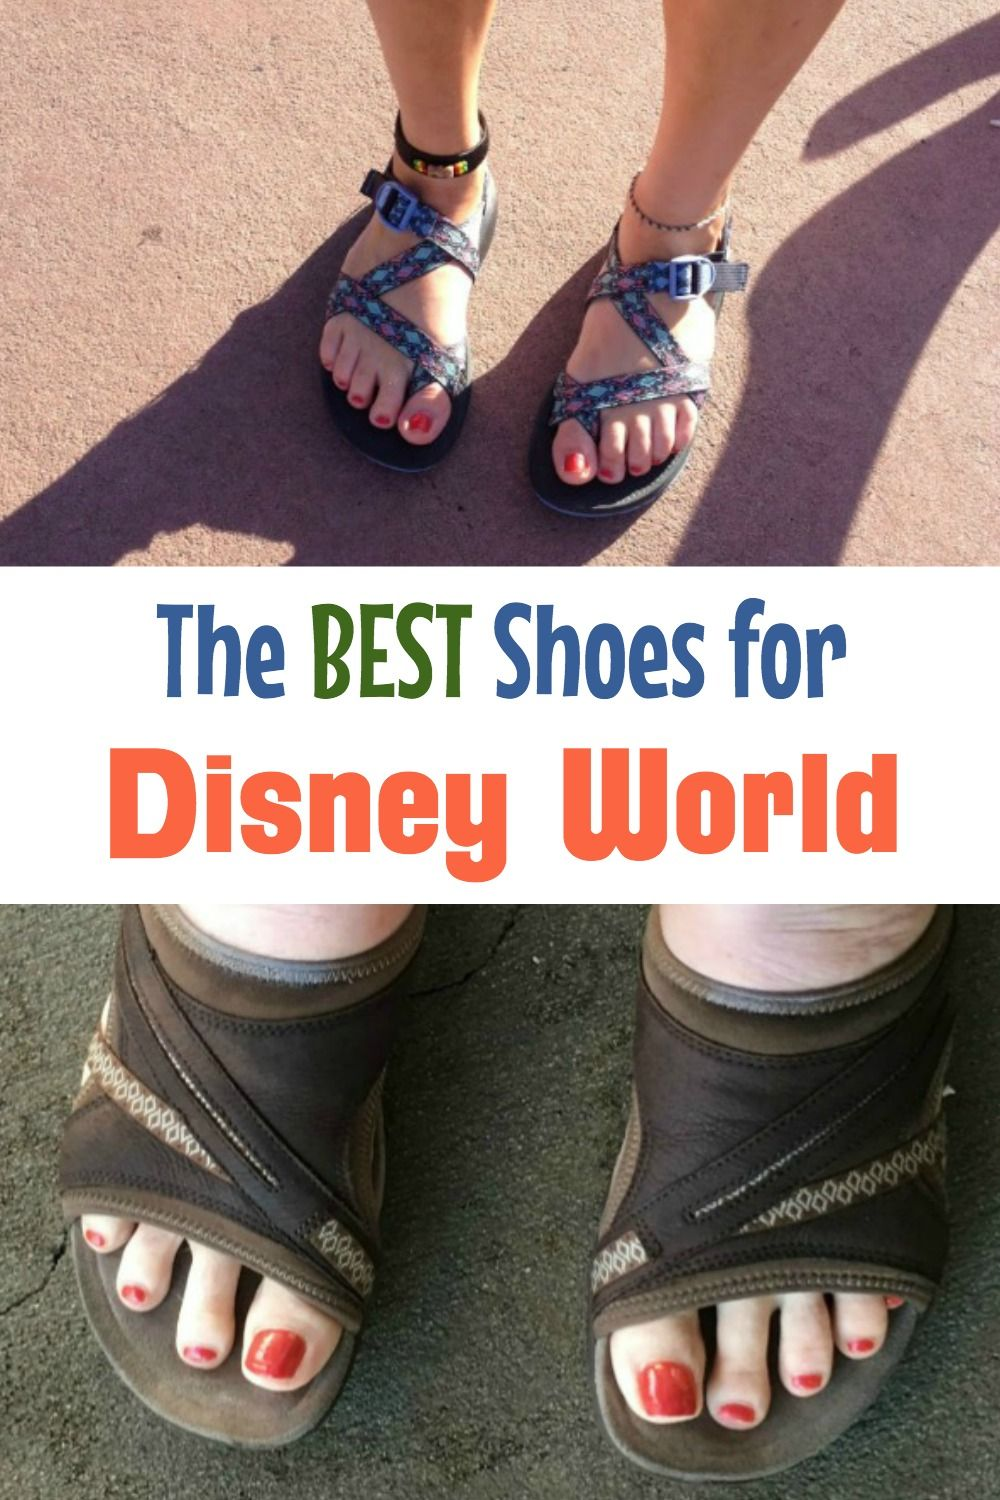 Sandals, Sneakers, and Walking Shoes